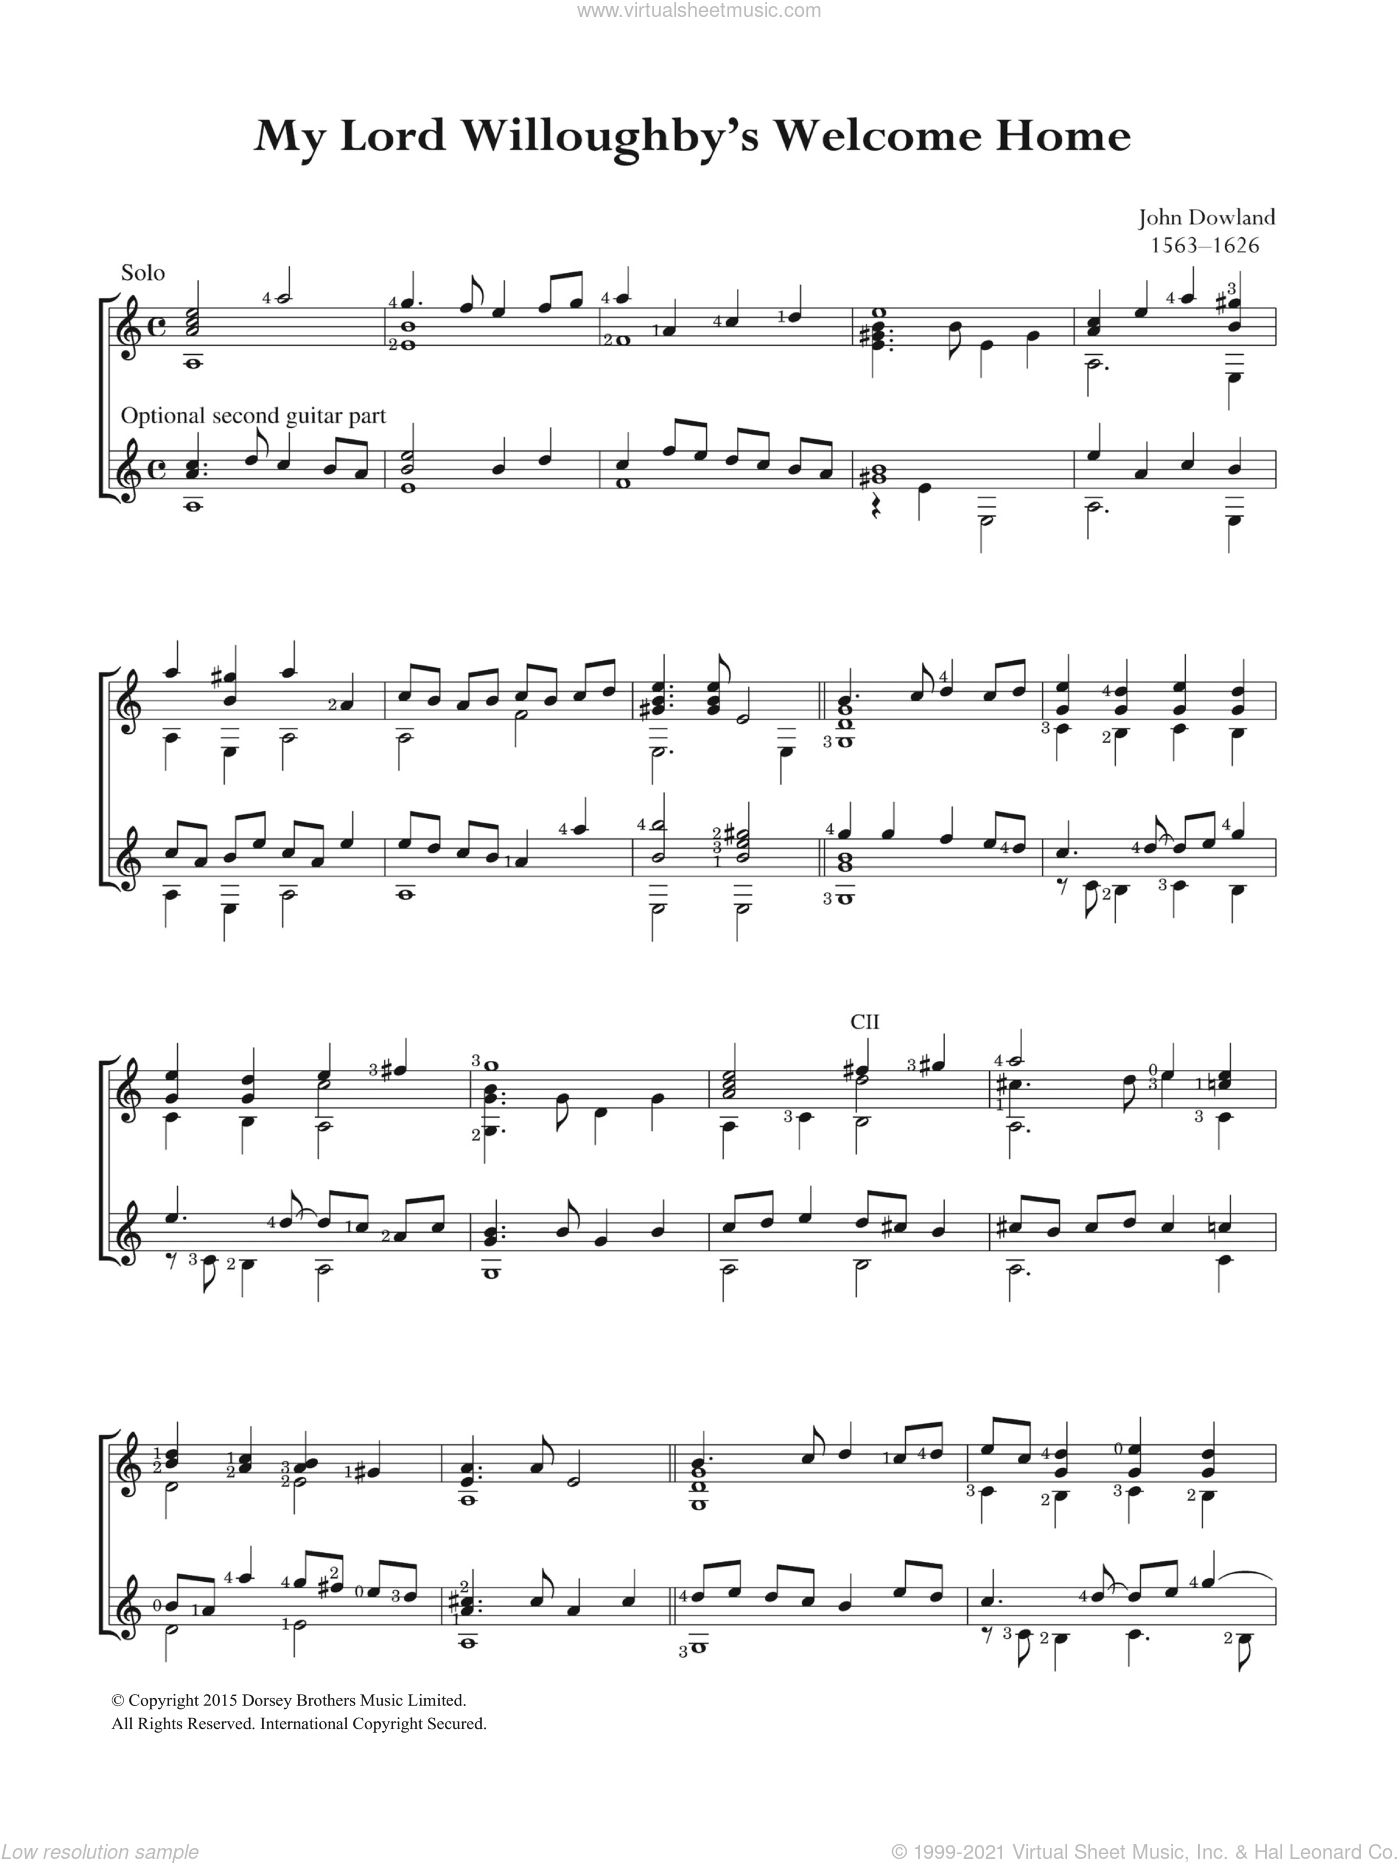 My Lord Willoughby's Welcome Home sheet music for guitar solo (chords) by John Dowland, easy guitar (chords). Score Image Preview.